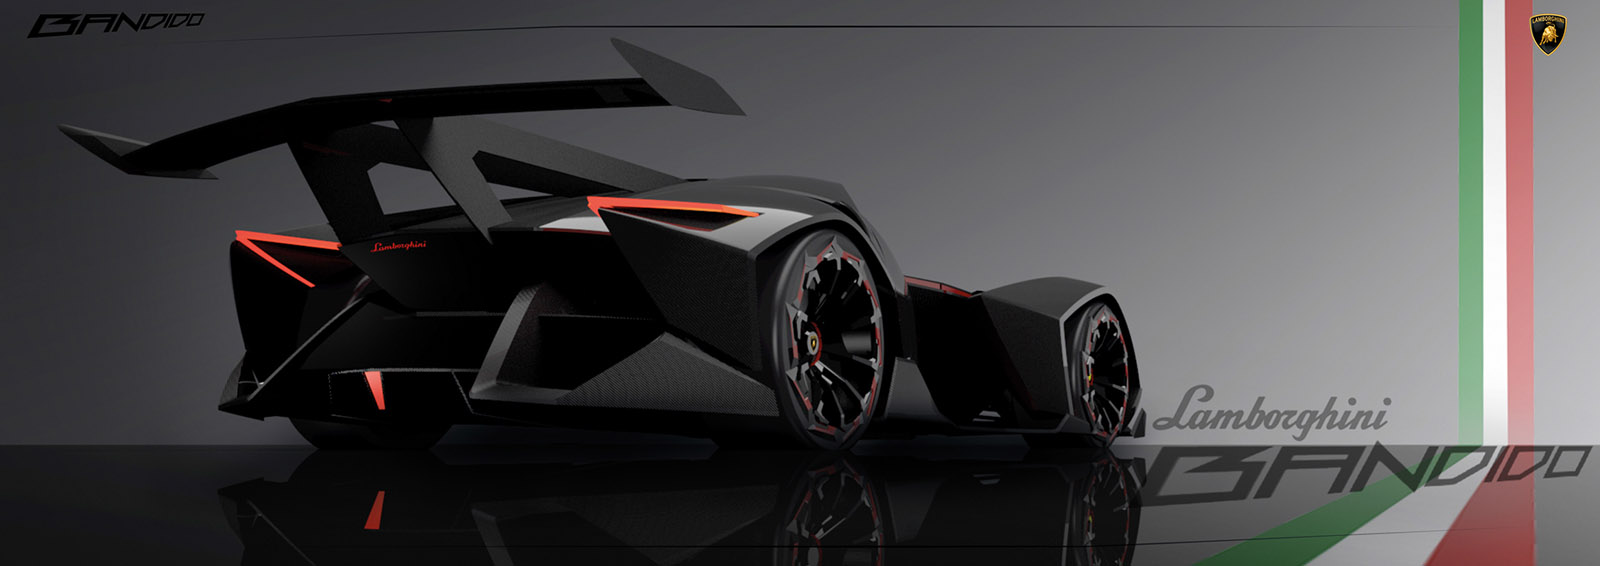 Best 7 Seater Cars >> This Electric Single-Seater Concept Is So Outrageous Lamborghini Could Actually Build It | Carscoops